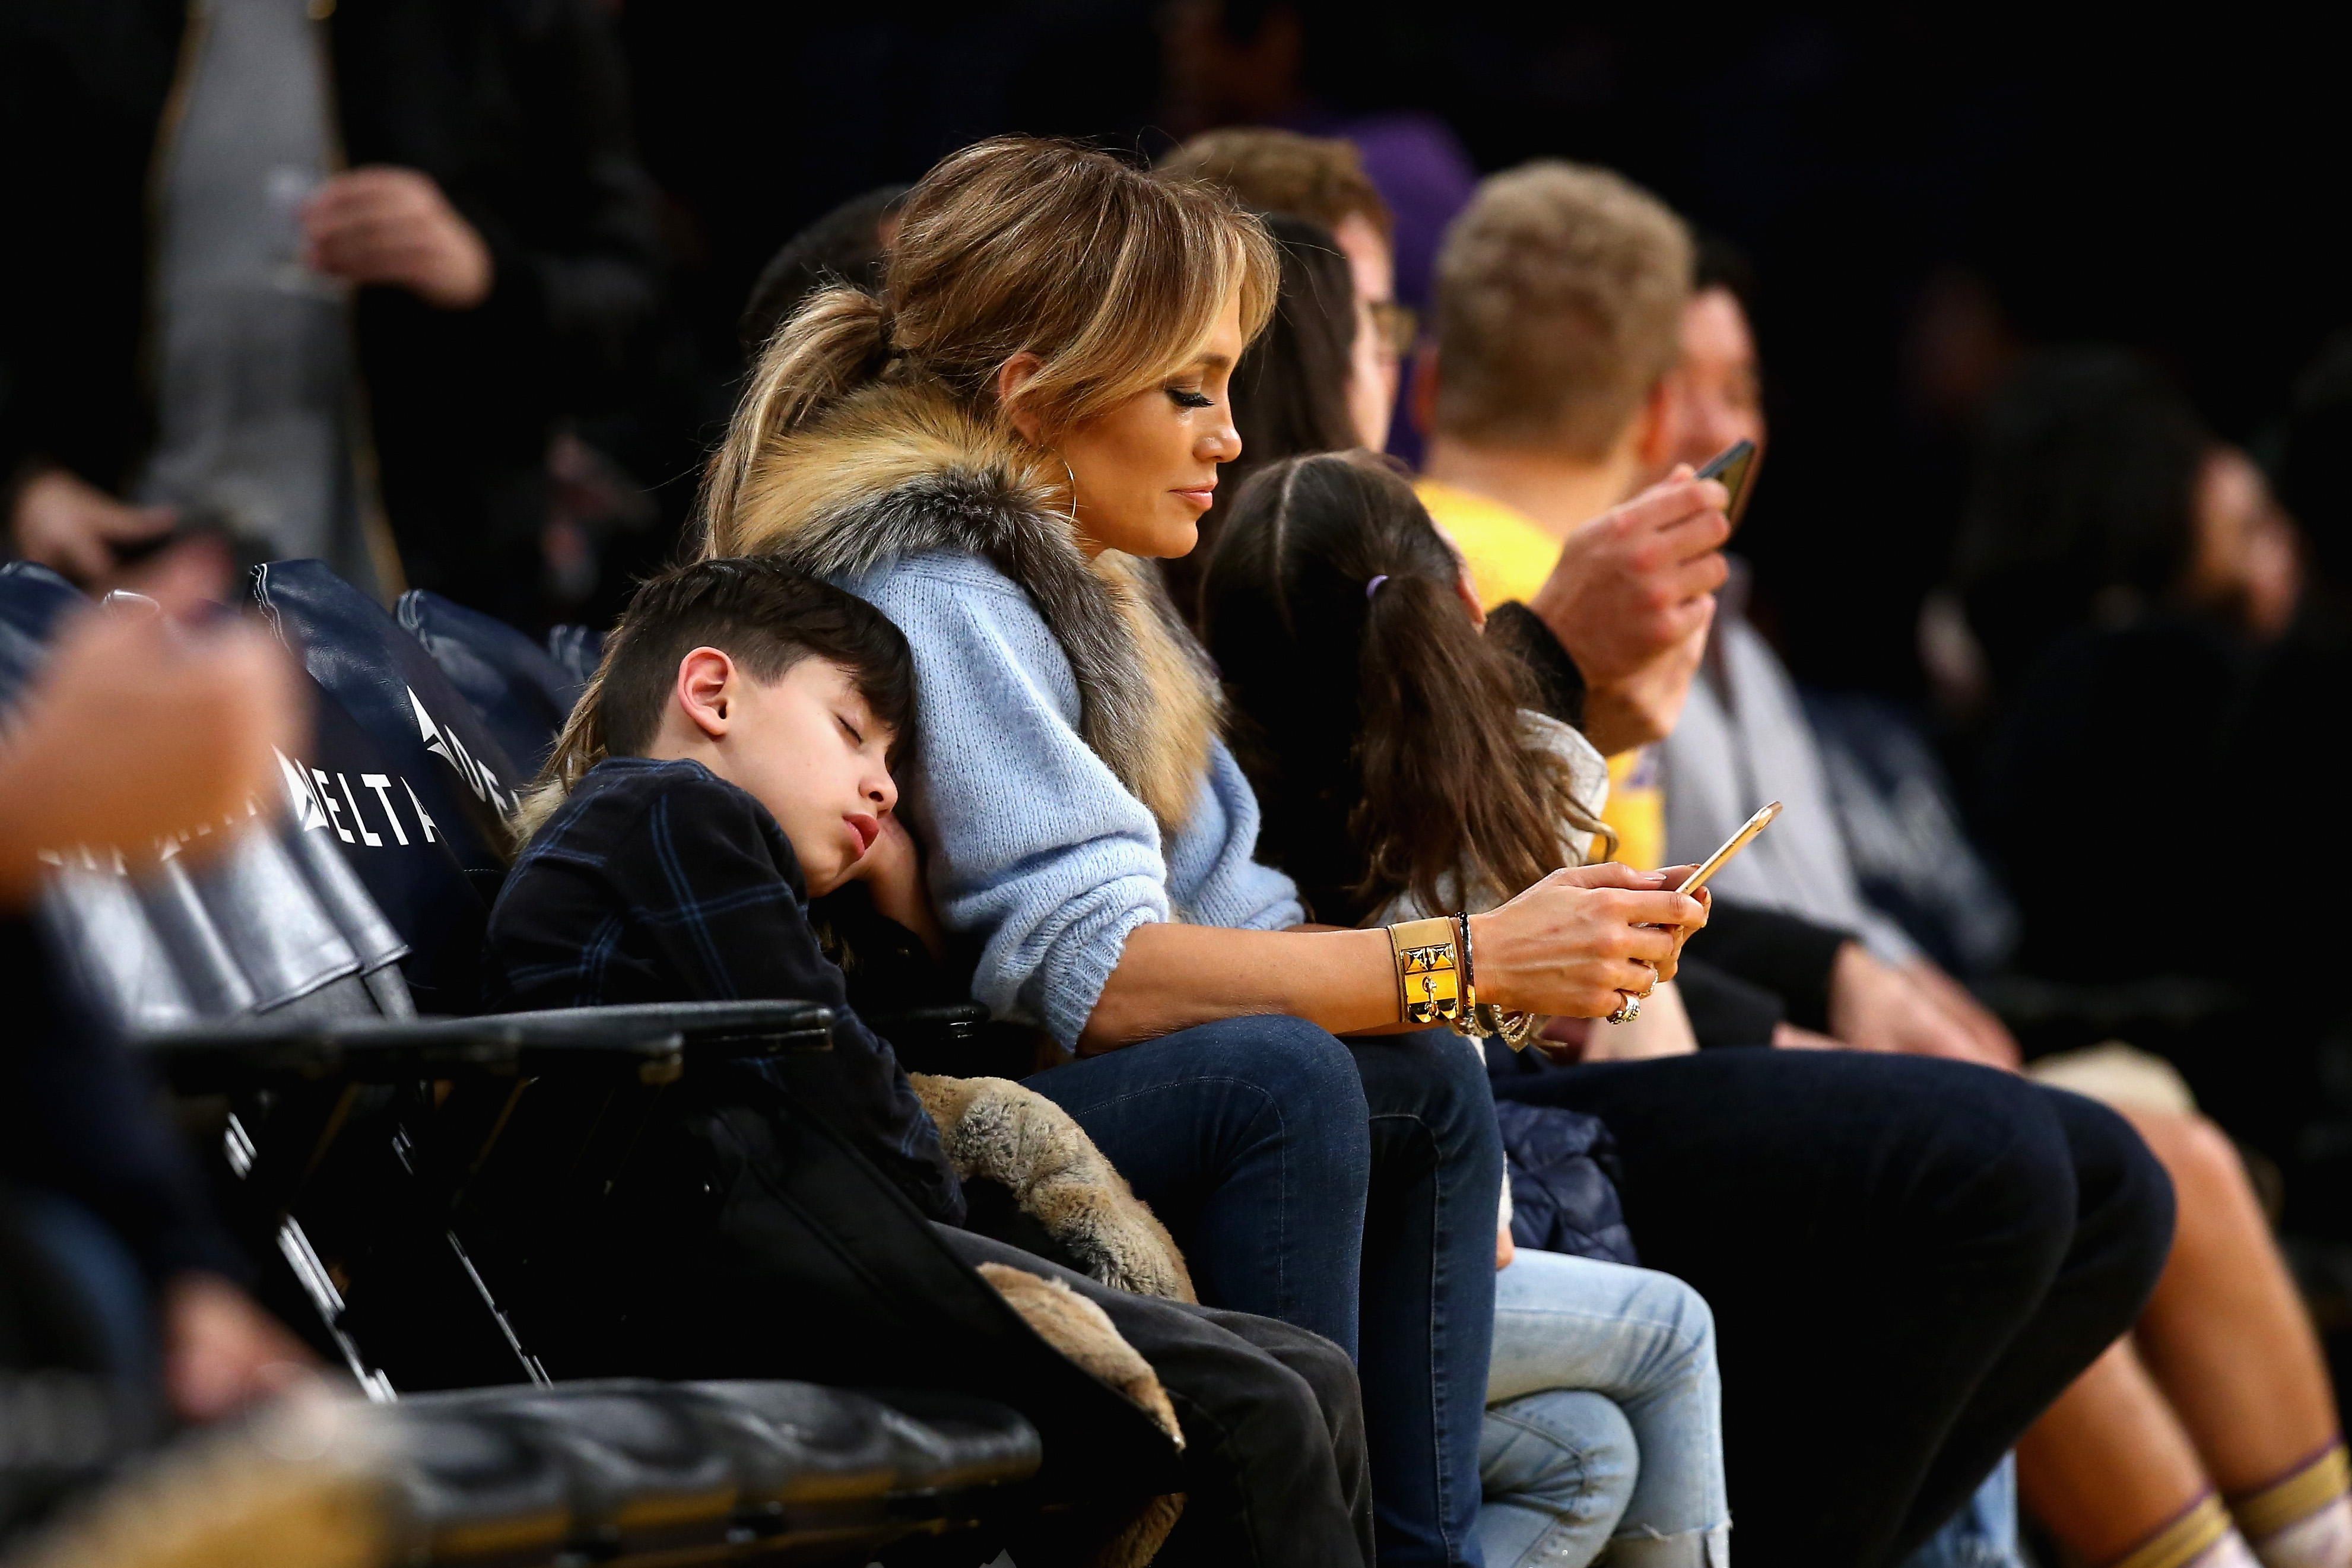 Jennifer Lopez hangs with her kiddos at the LA Lakers game